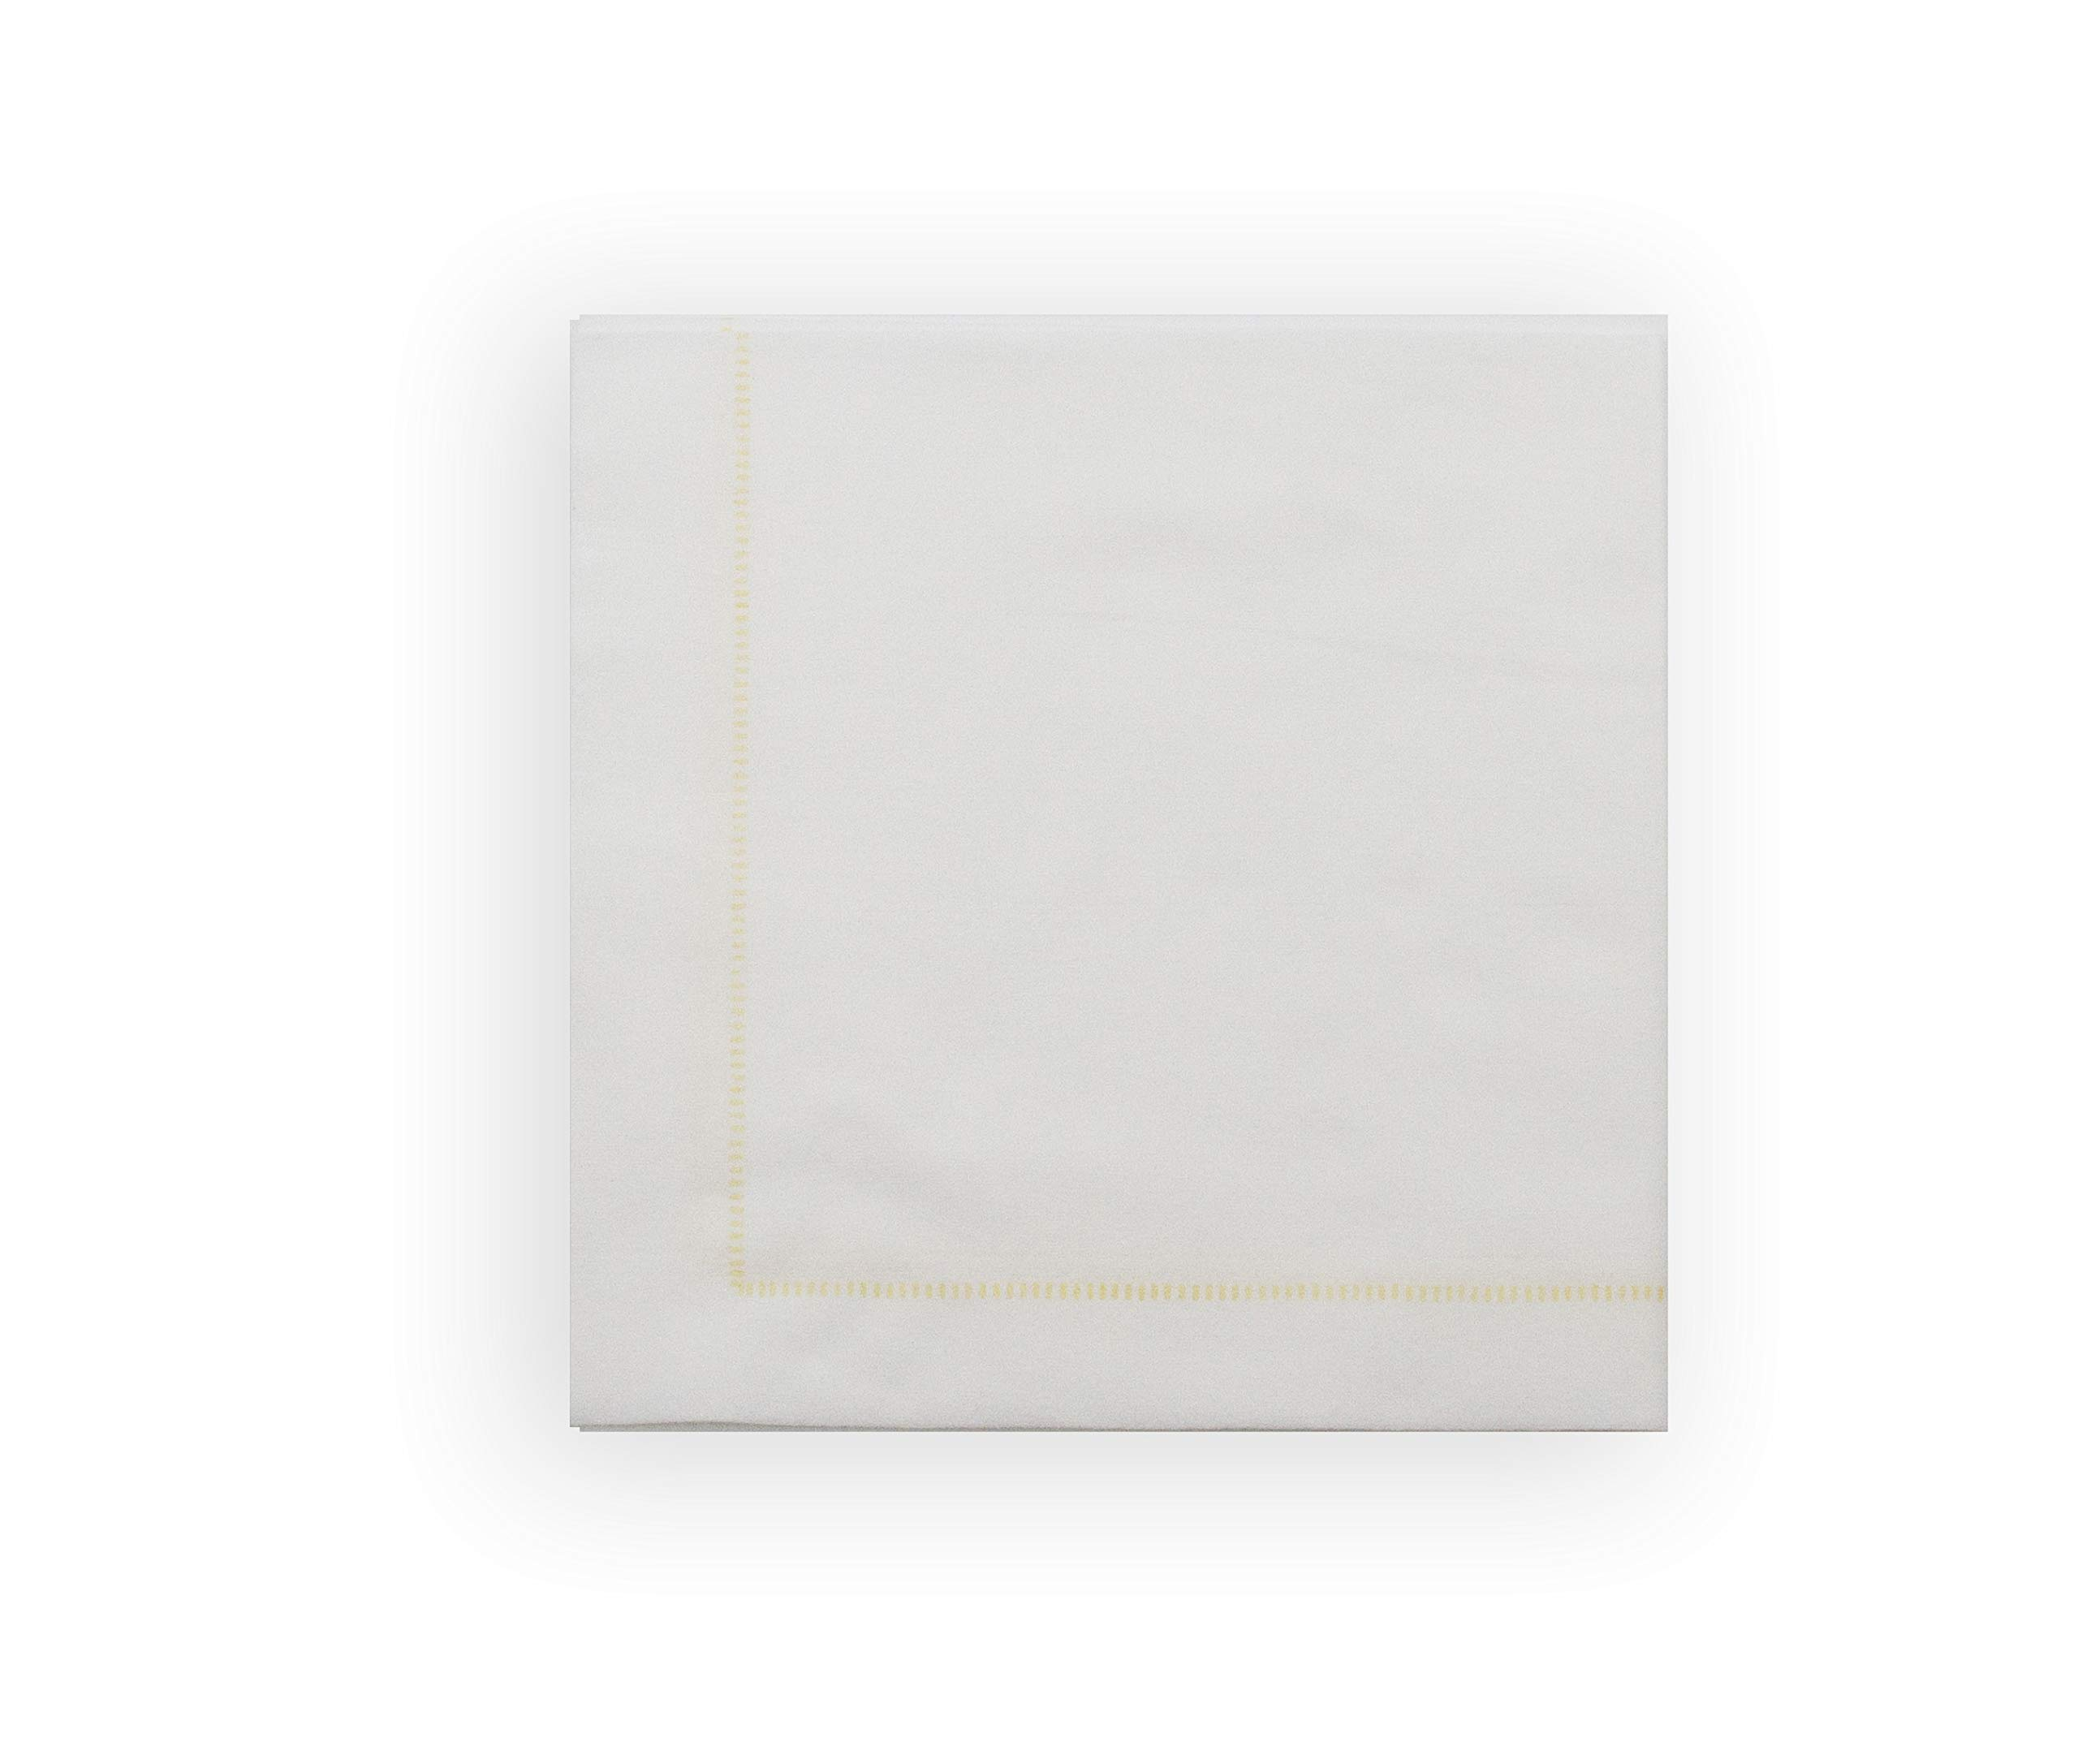 The Napkins Single use Cloth Feel like Napkin Dinner Hemstitch Gold Deluxe Pack of 50